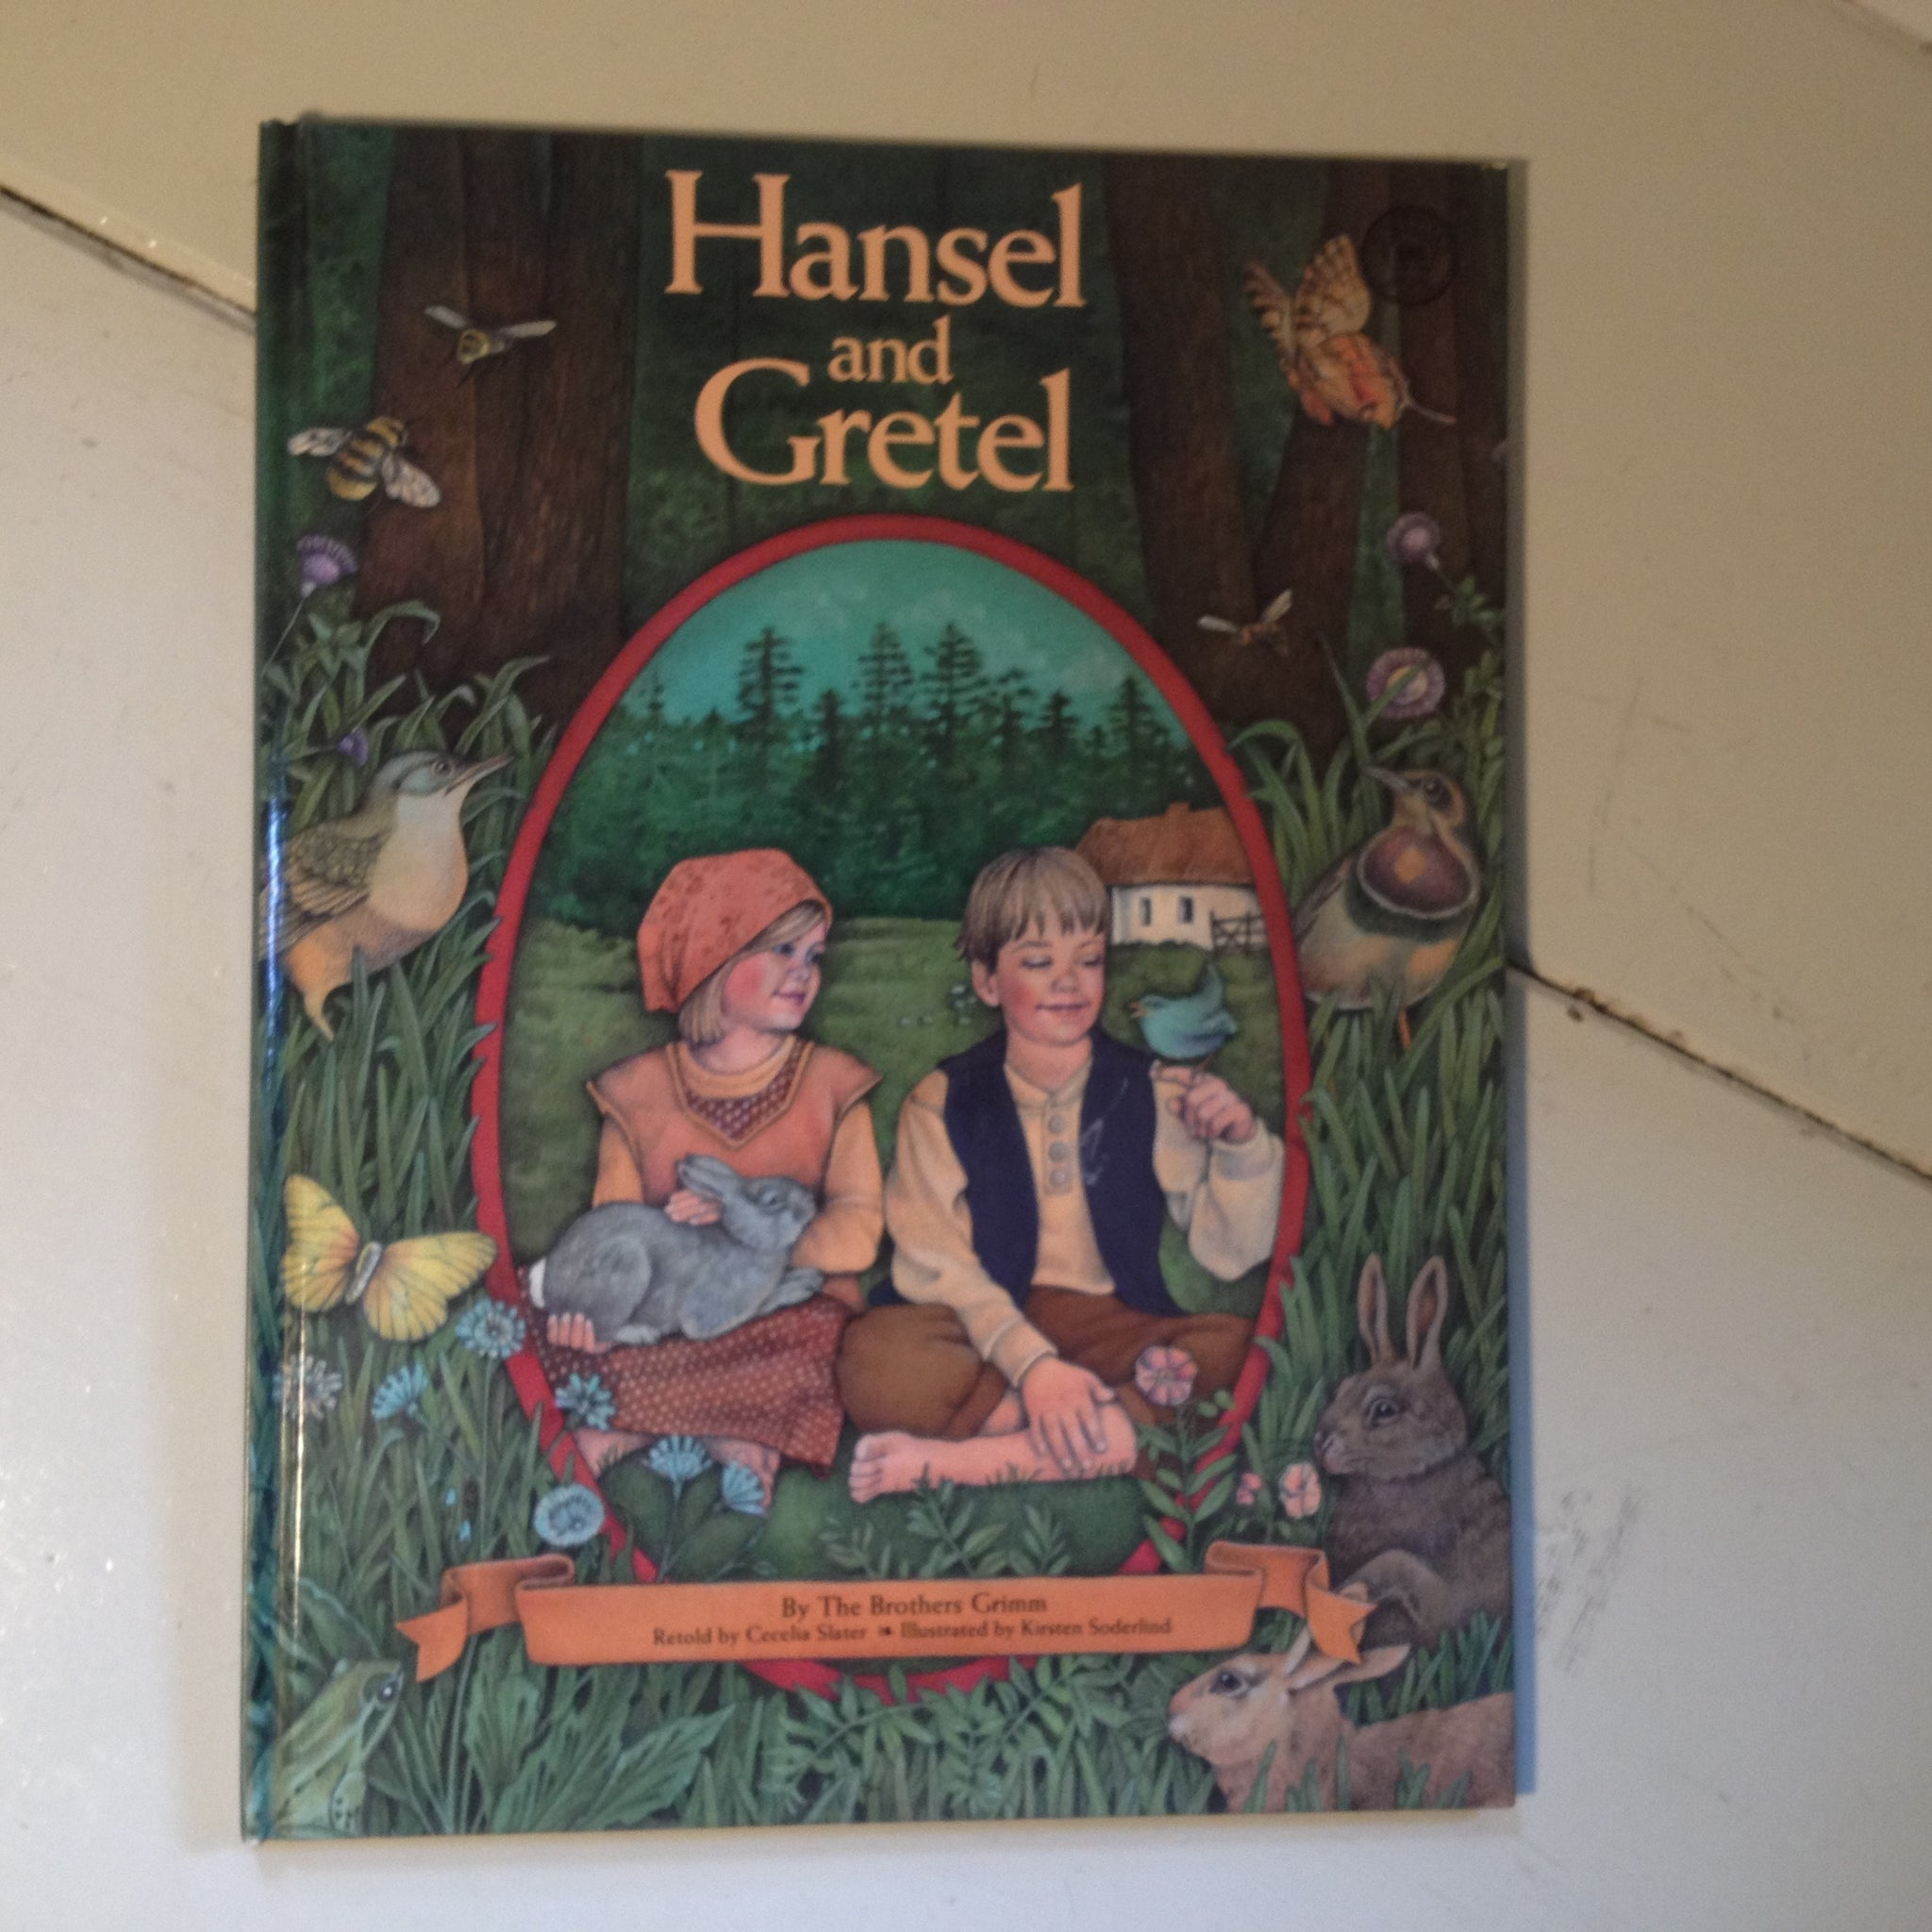 Hansel and Gretel by The Brothers Grimm Retold by Cecelia Slater